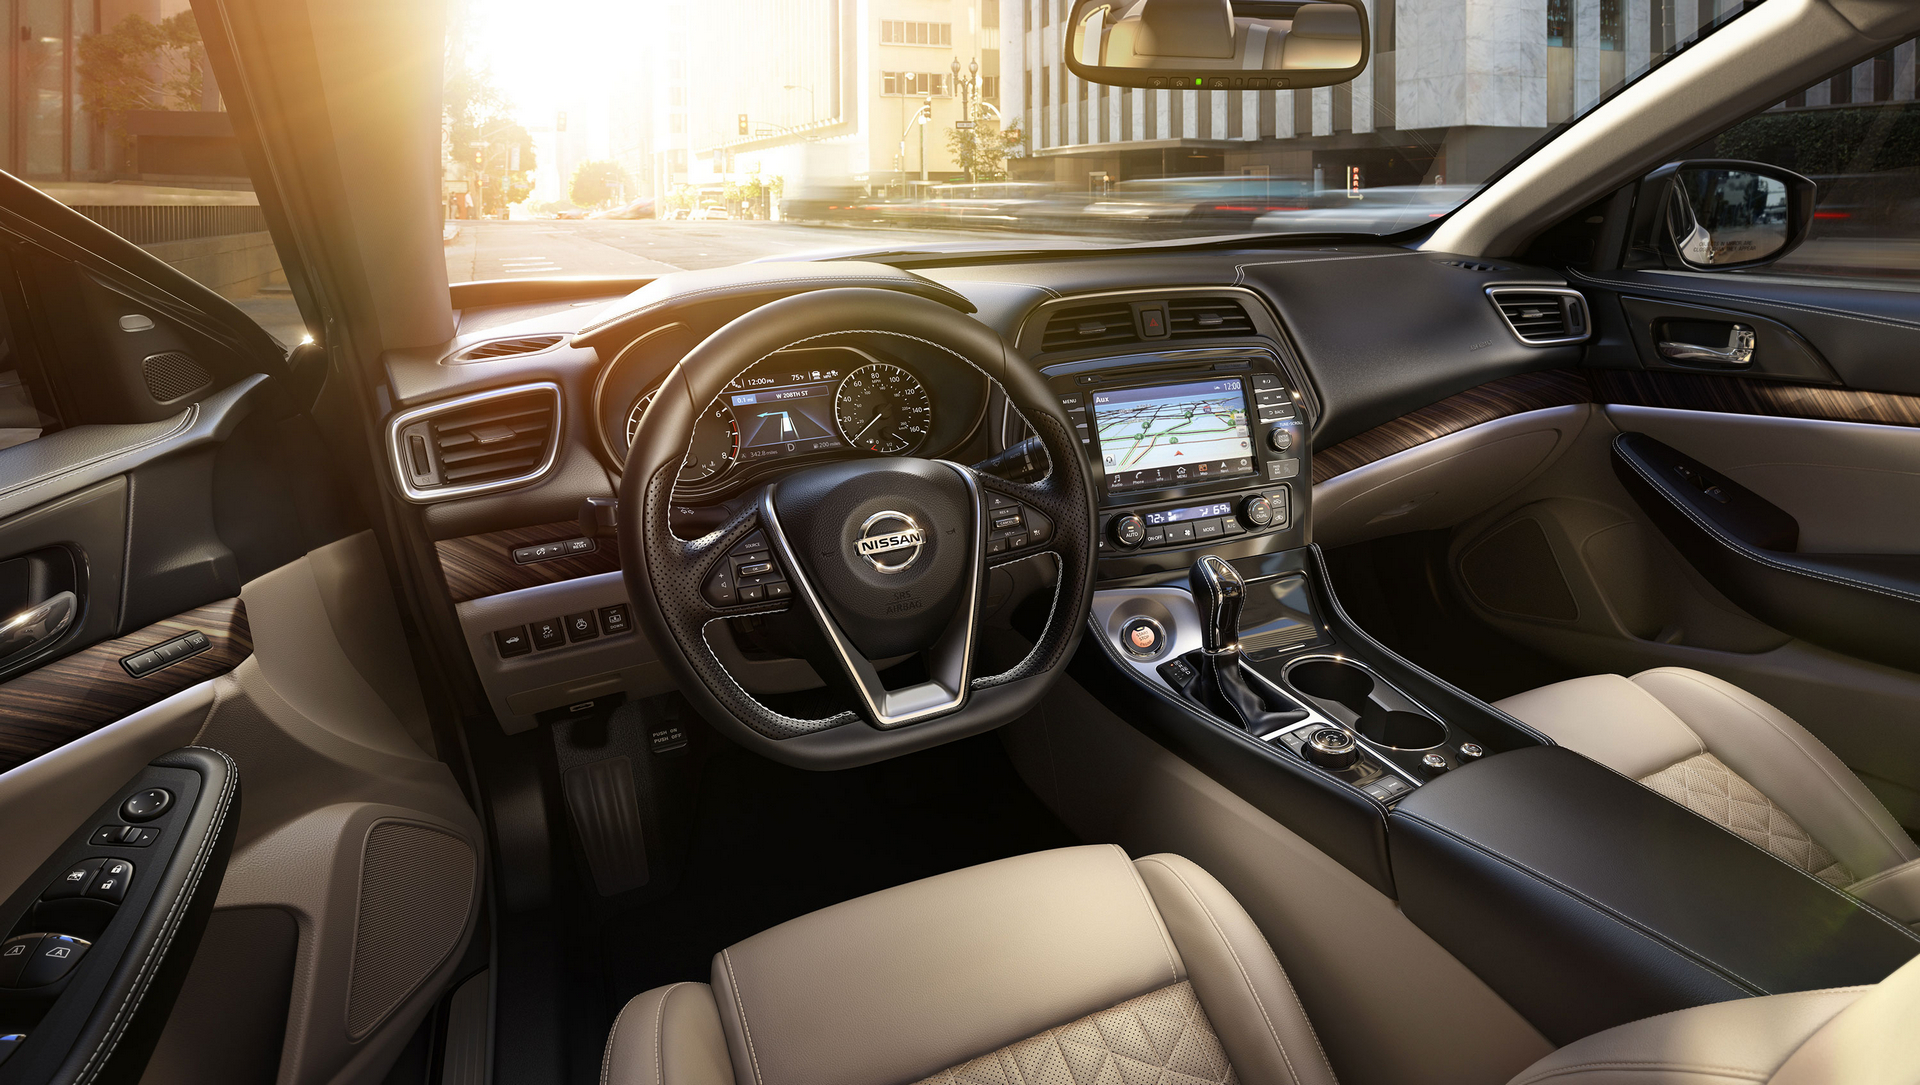 2017 Nissan Maxima © Nissan Motor Co., Ltd.